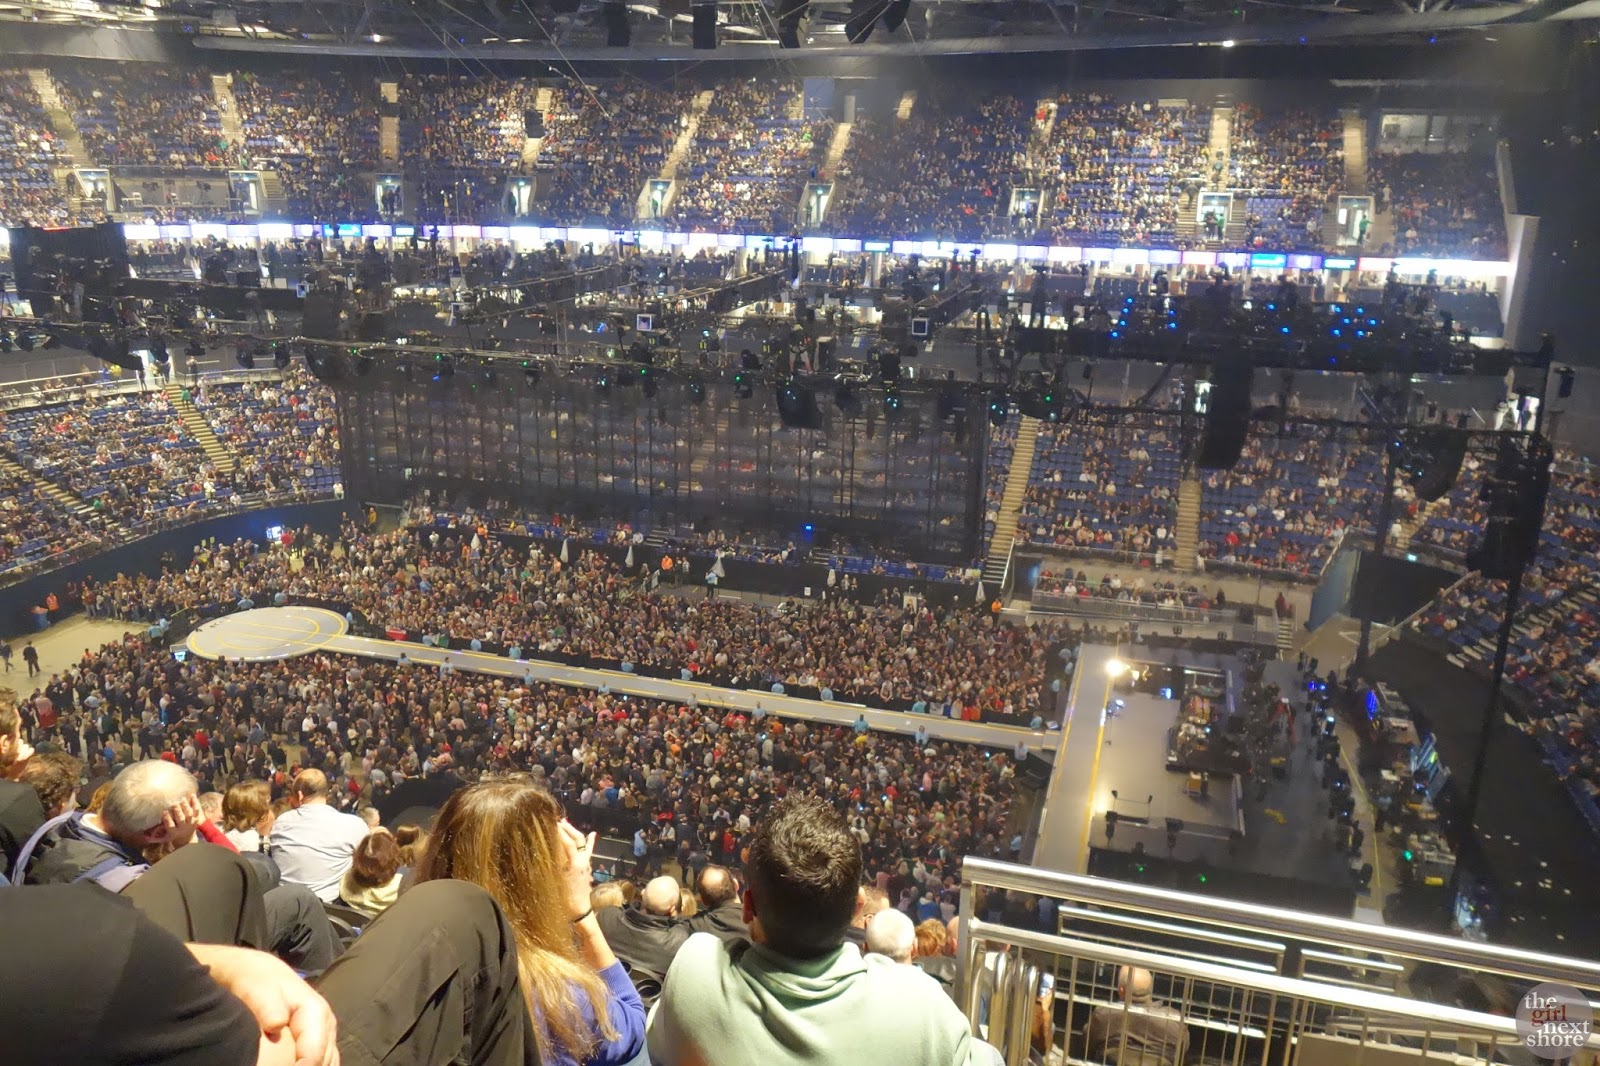 Tourism Experience: A Bucket List Moment: U2 INNOCENCE + EXPERIENCE Tour At